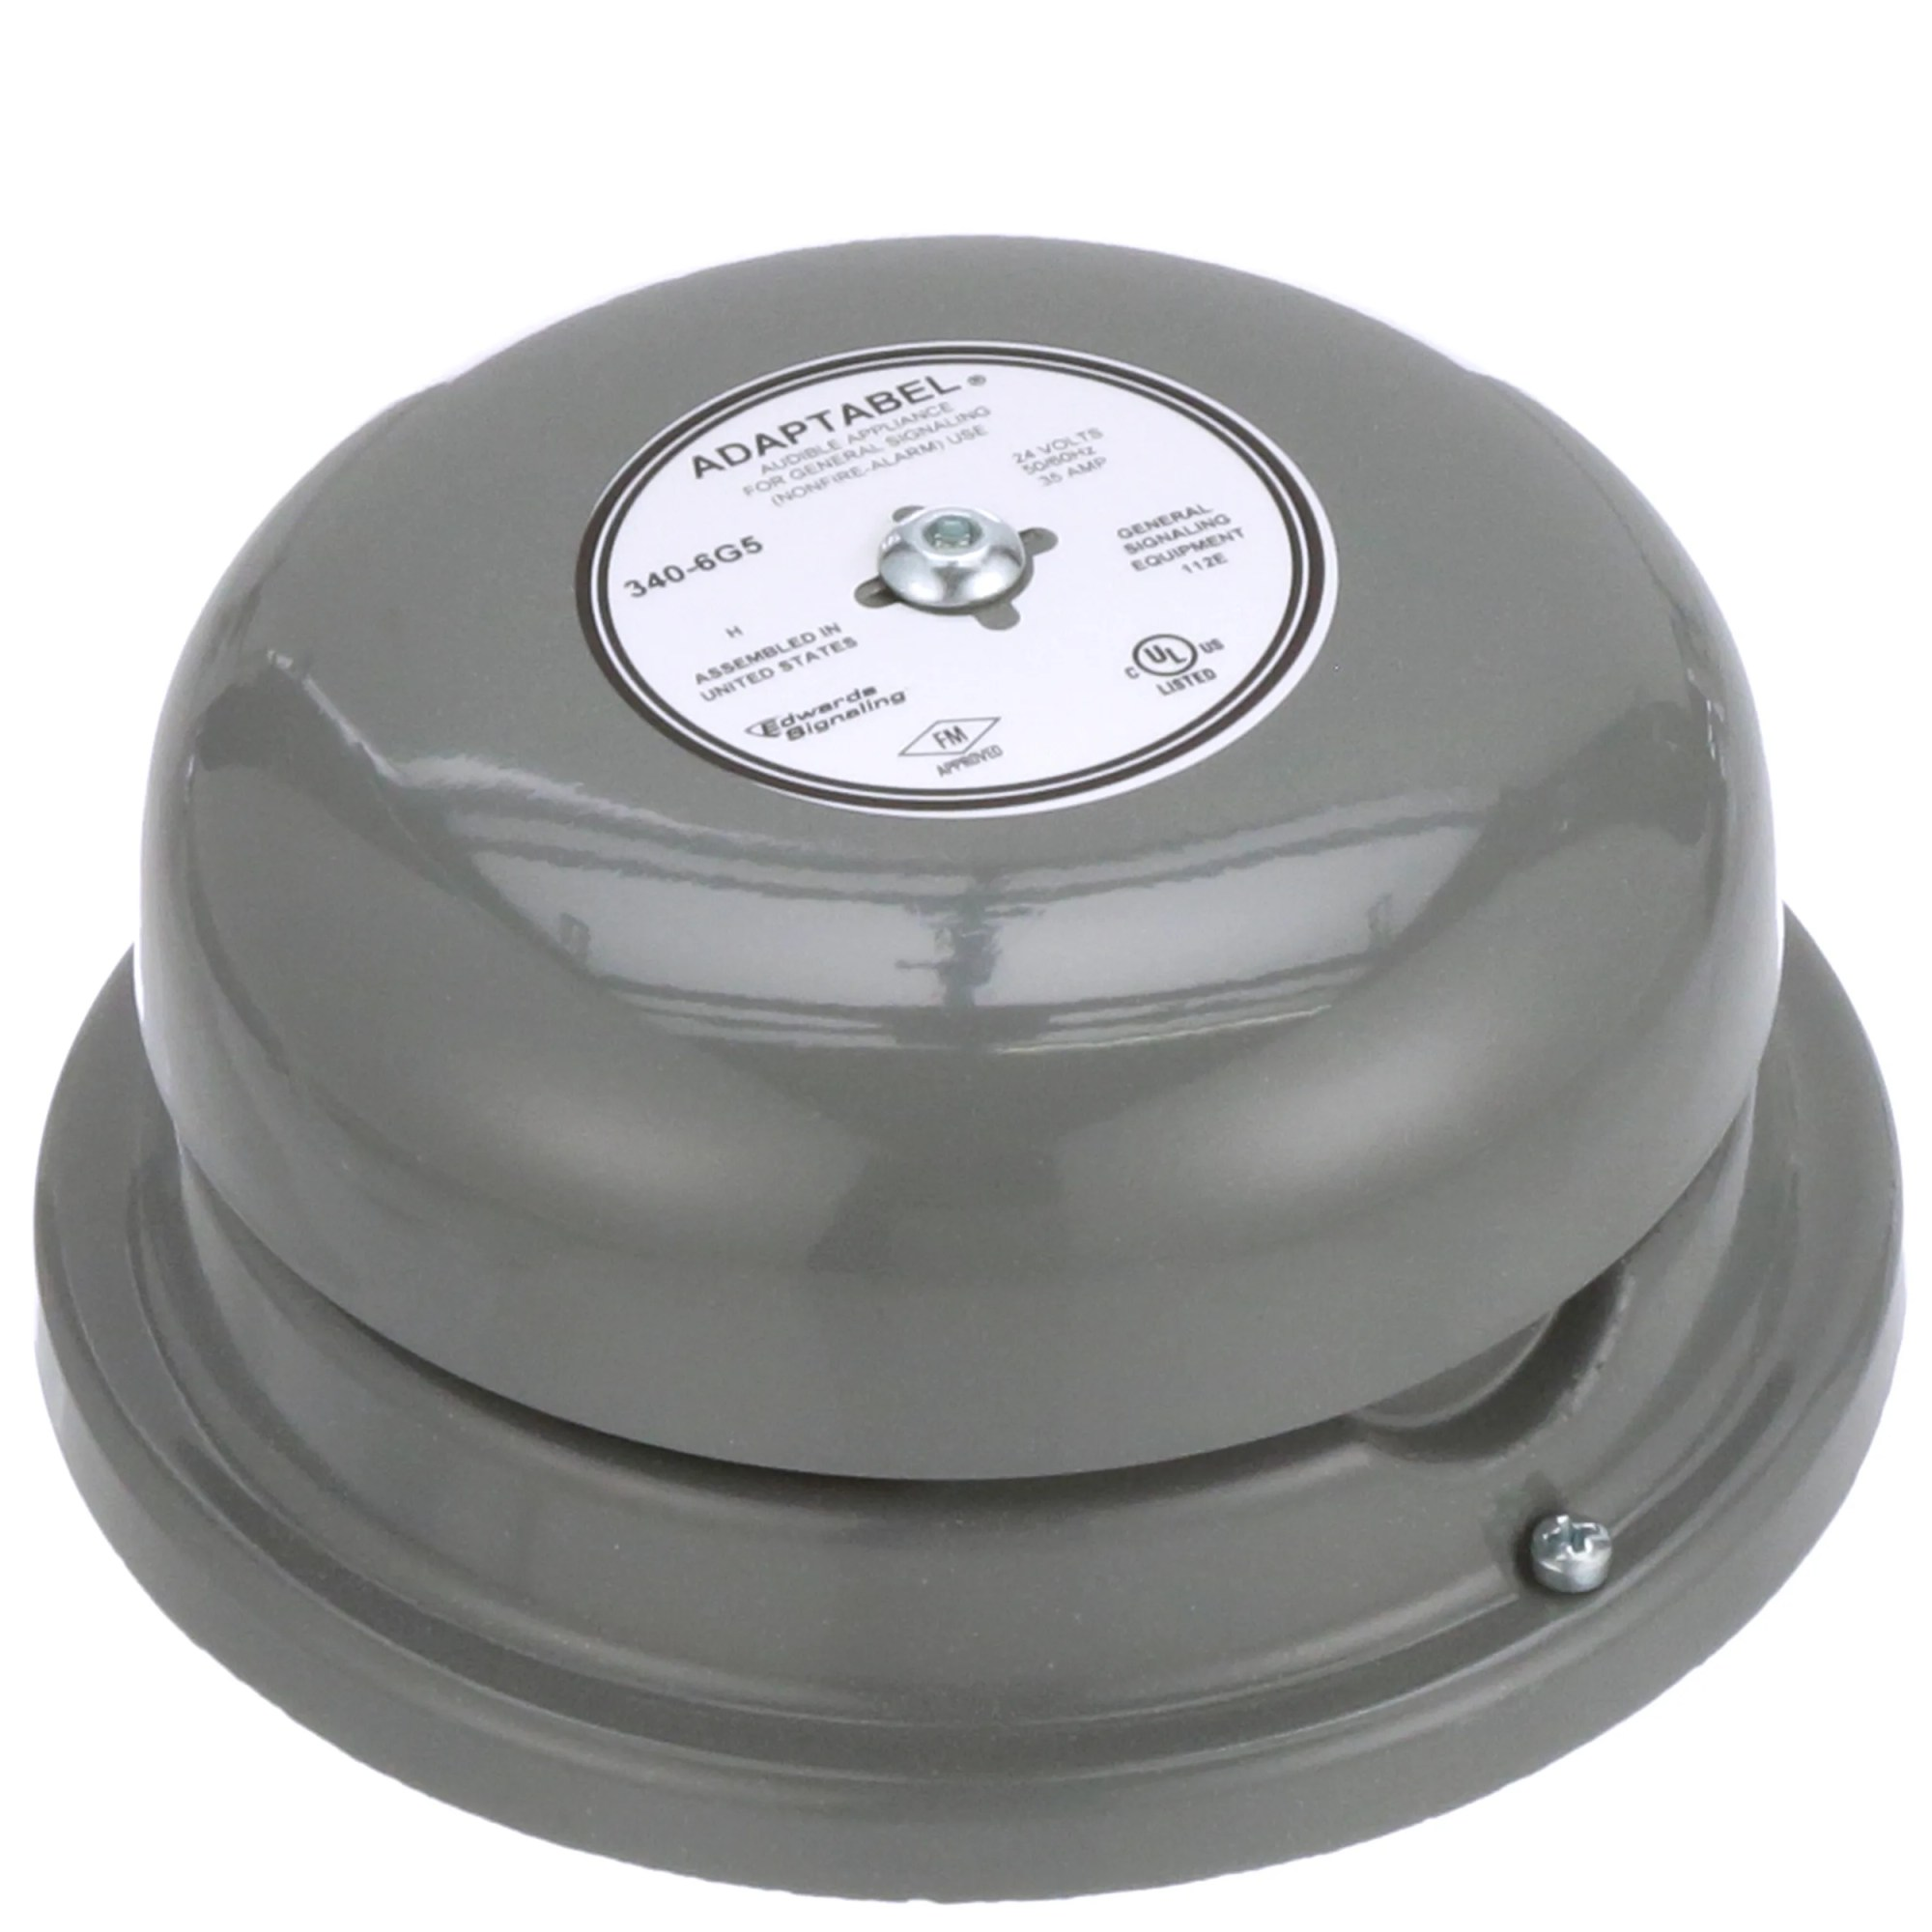 hight resolution of edwards signaling 340 6g5 audio warning device bell vibrating continuous 24vac sup 0 35a 92db allied electronics automation